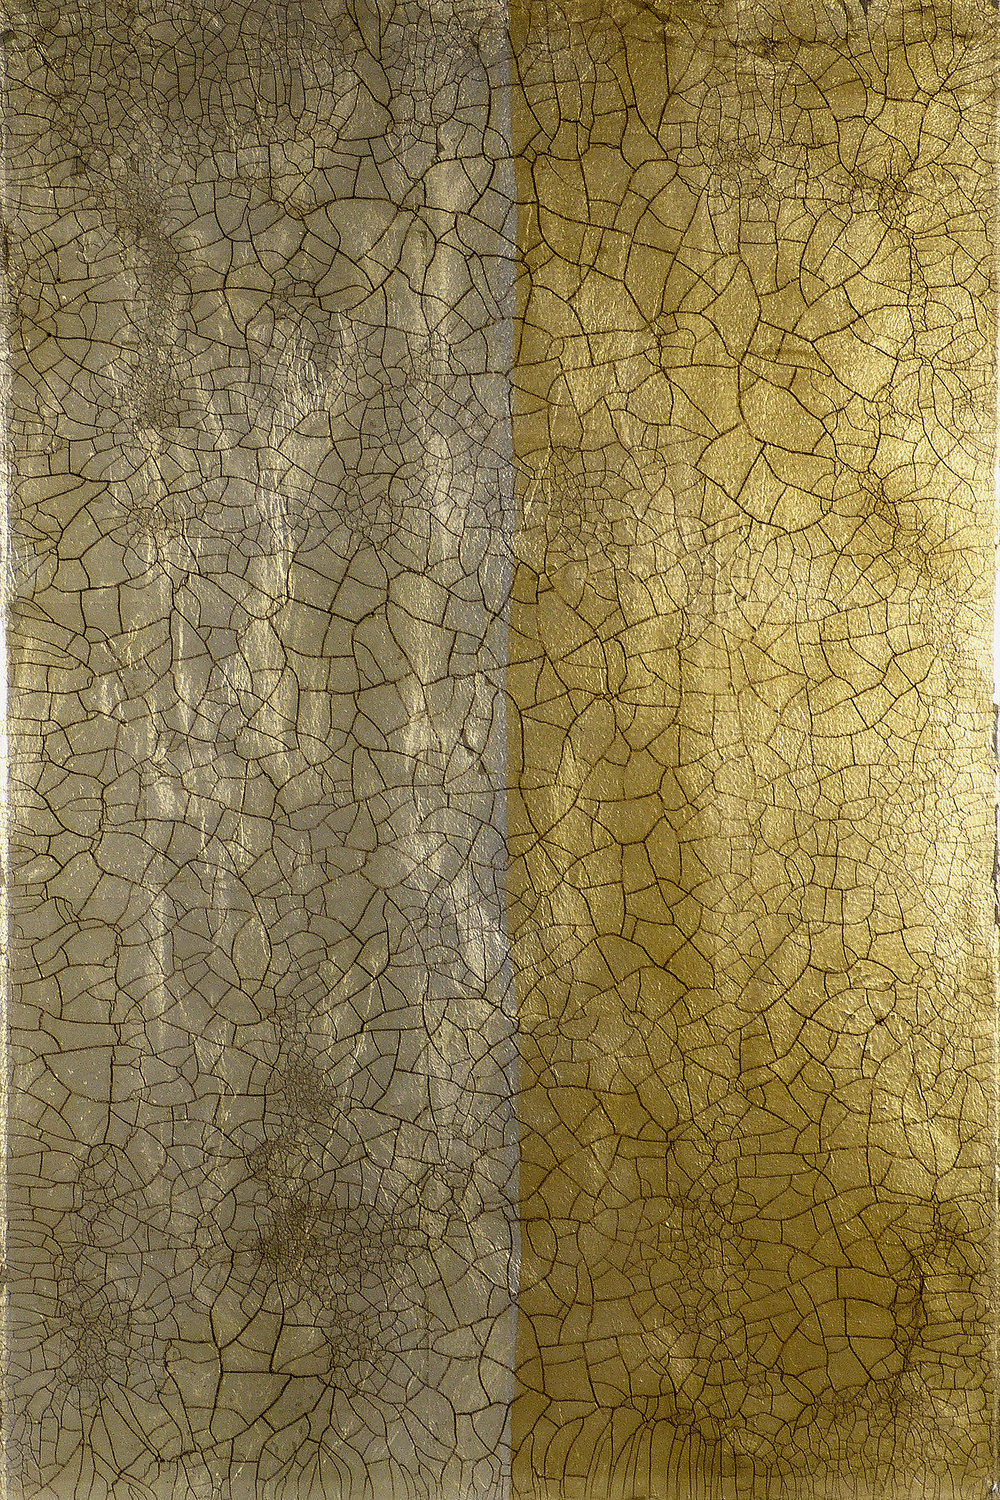 OTAVA 2 | 78x53cm gilded silver leaf and mixed media on board with high gloss epoxy resin | £1,900.00